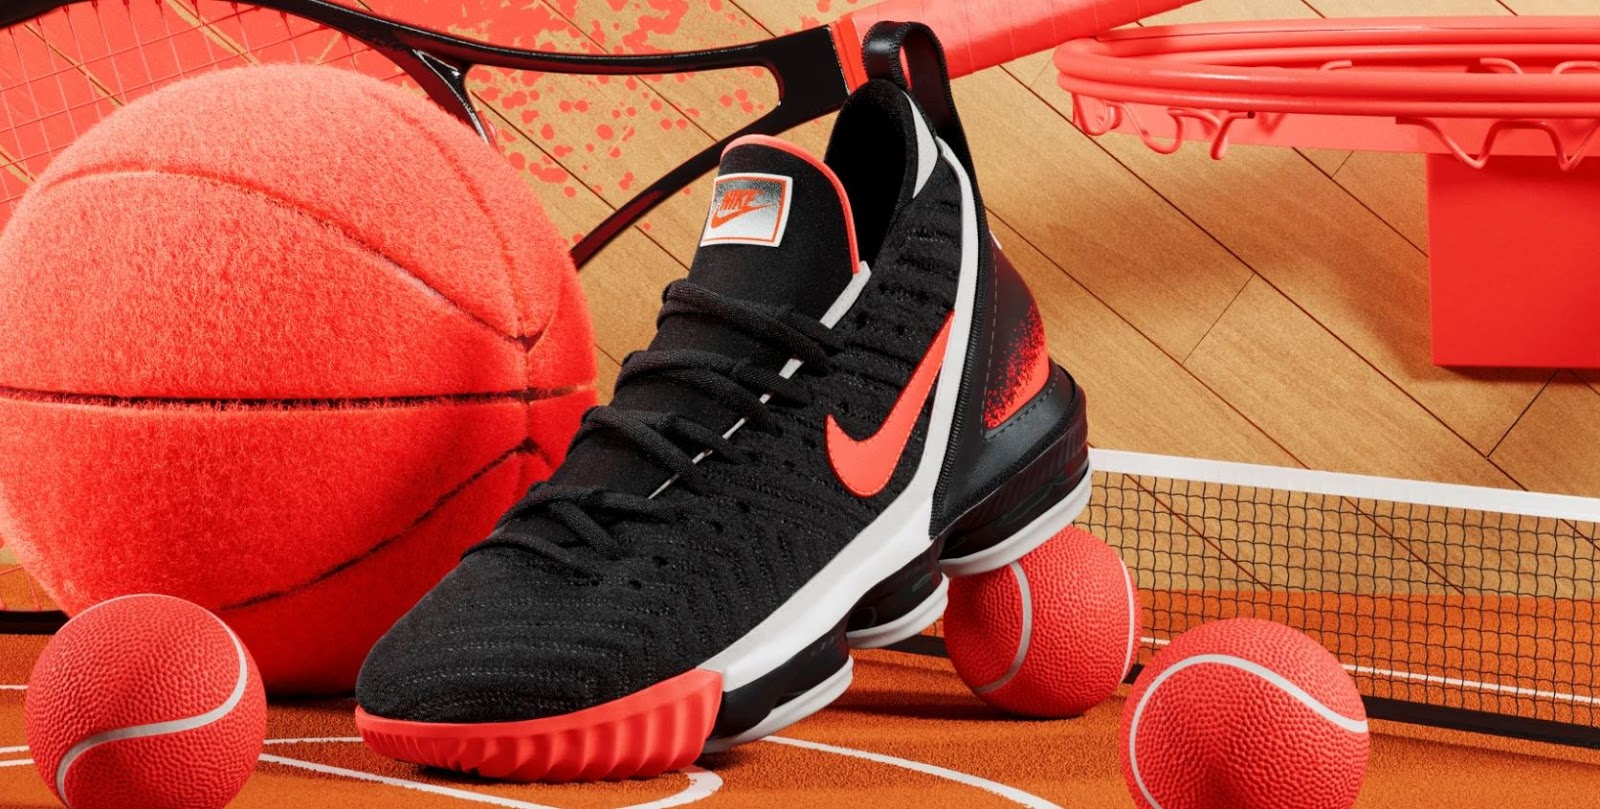 c5bd2820ec3 THE SNEAKER ADDICT: Nike Lebron 16 'Hot Lava' Black Sneaker (Images ...